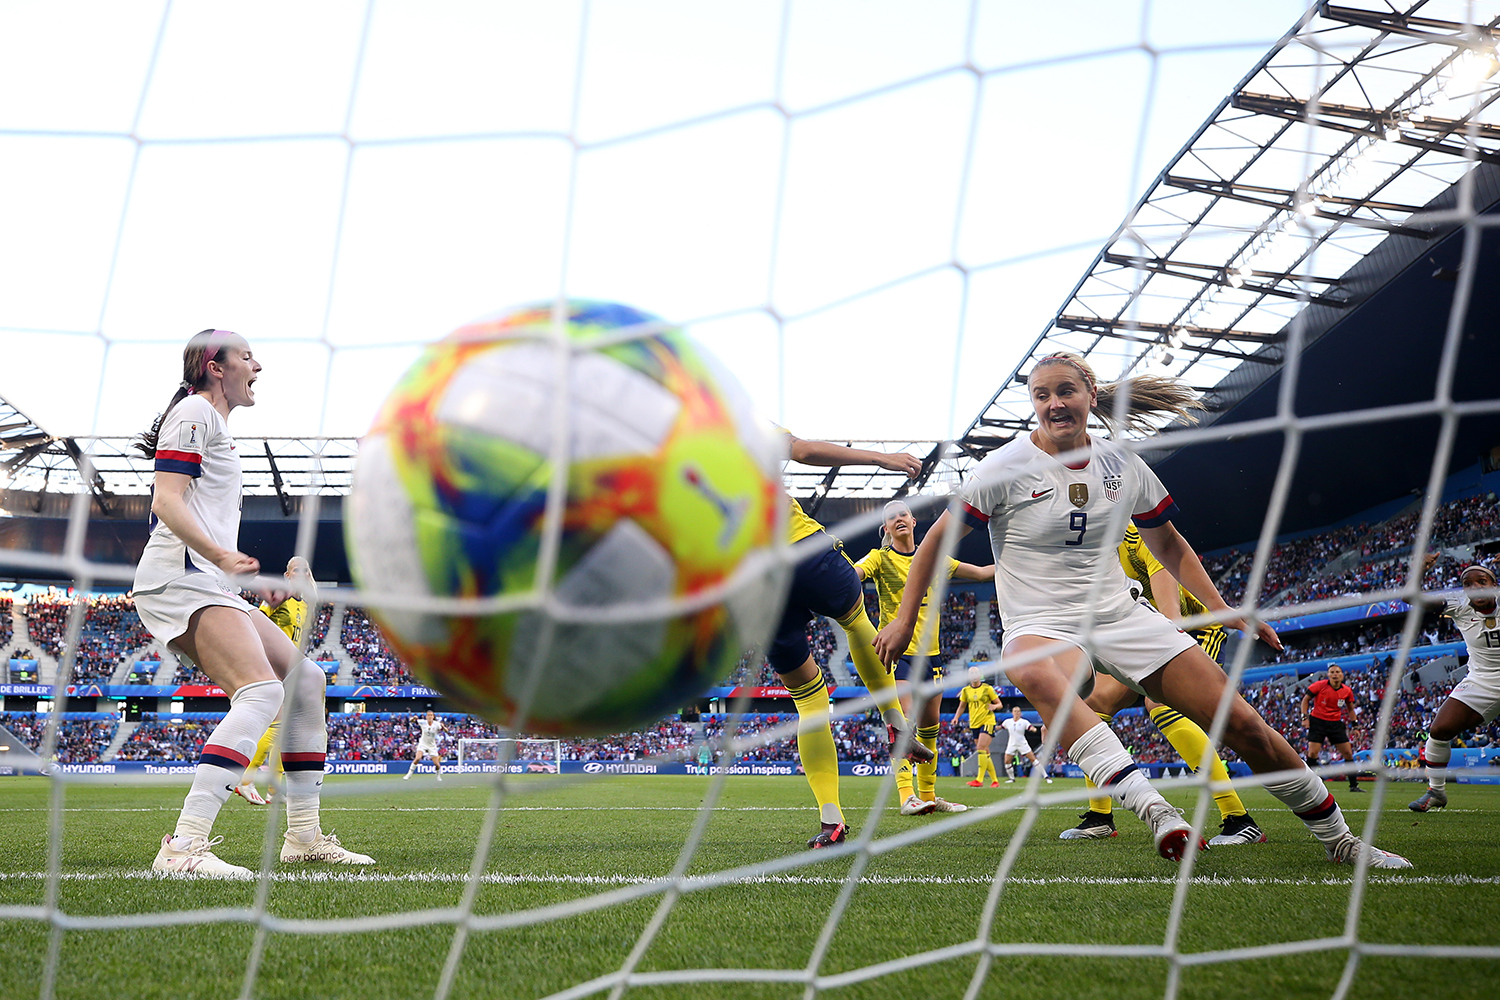 LE HAVRE, FRANCE - JUNE 20: Lindsey Horan of the USA scores her team's first goal the 2019 FIFA Women's World Cup France group F match between Sweden and USA at Stade Oceane on June 20, 2019 in Le Havre, France. (Alex Grimm/Getty Images/TNS)